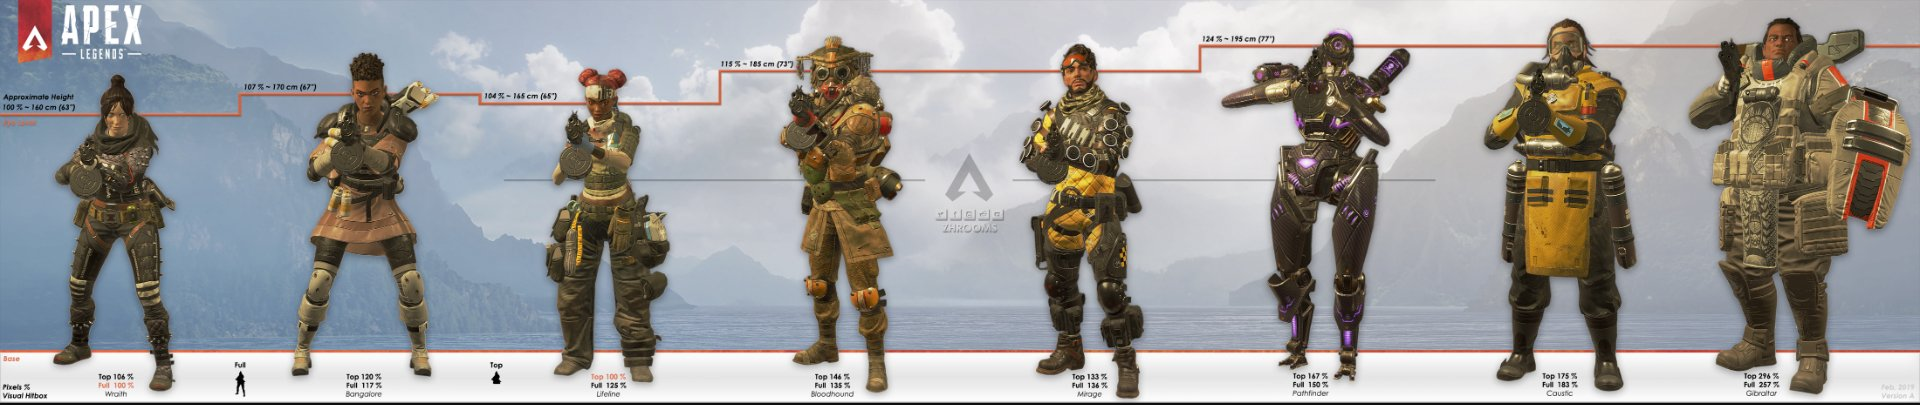 Apex Legends Hitboxes Chart Might Have You Switch Characters